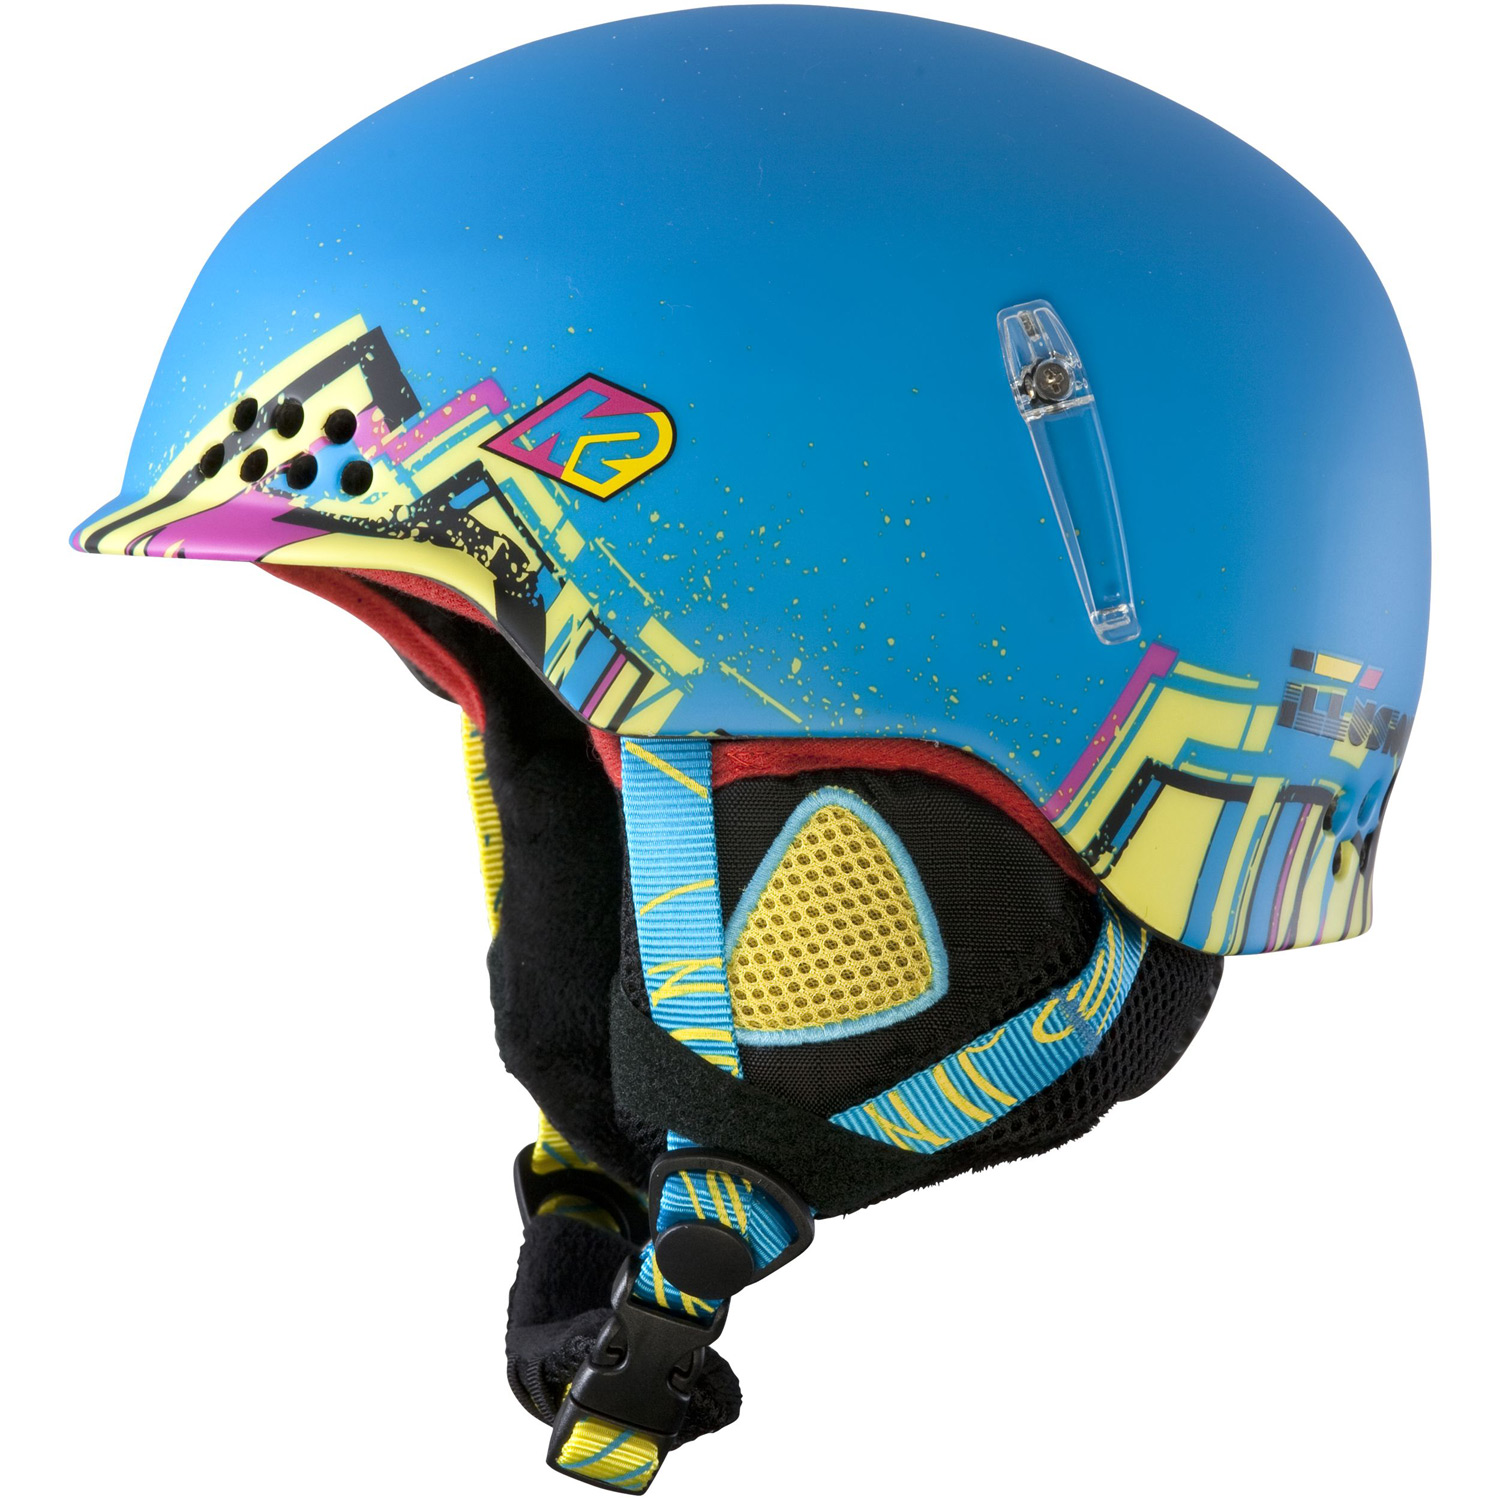 Ski This high performance, lightweight junior helmet screams style and has an amazing fit. This Illusion is real and it offers the protection your little one needs.Key Features of the K2 Illusion Ski Helmet: Weight: 368g Binding Options: Helmet Construction: In Mold Features: Passive Channel Ventilation, K2dialed Fit System, Washable Full-Wrap Liner System, Side Goggle Retention Clips - $62.95